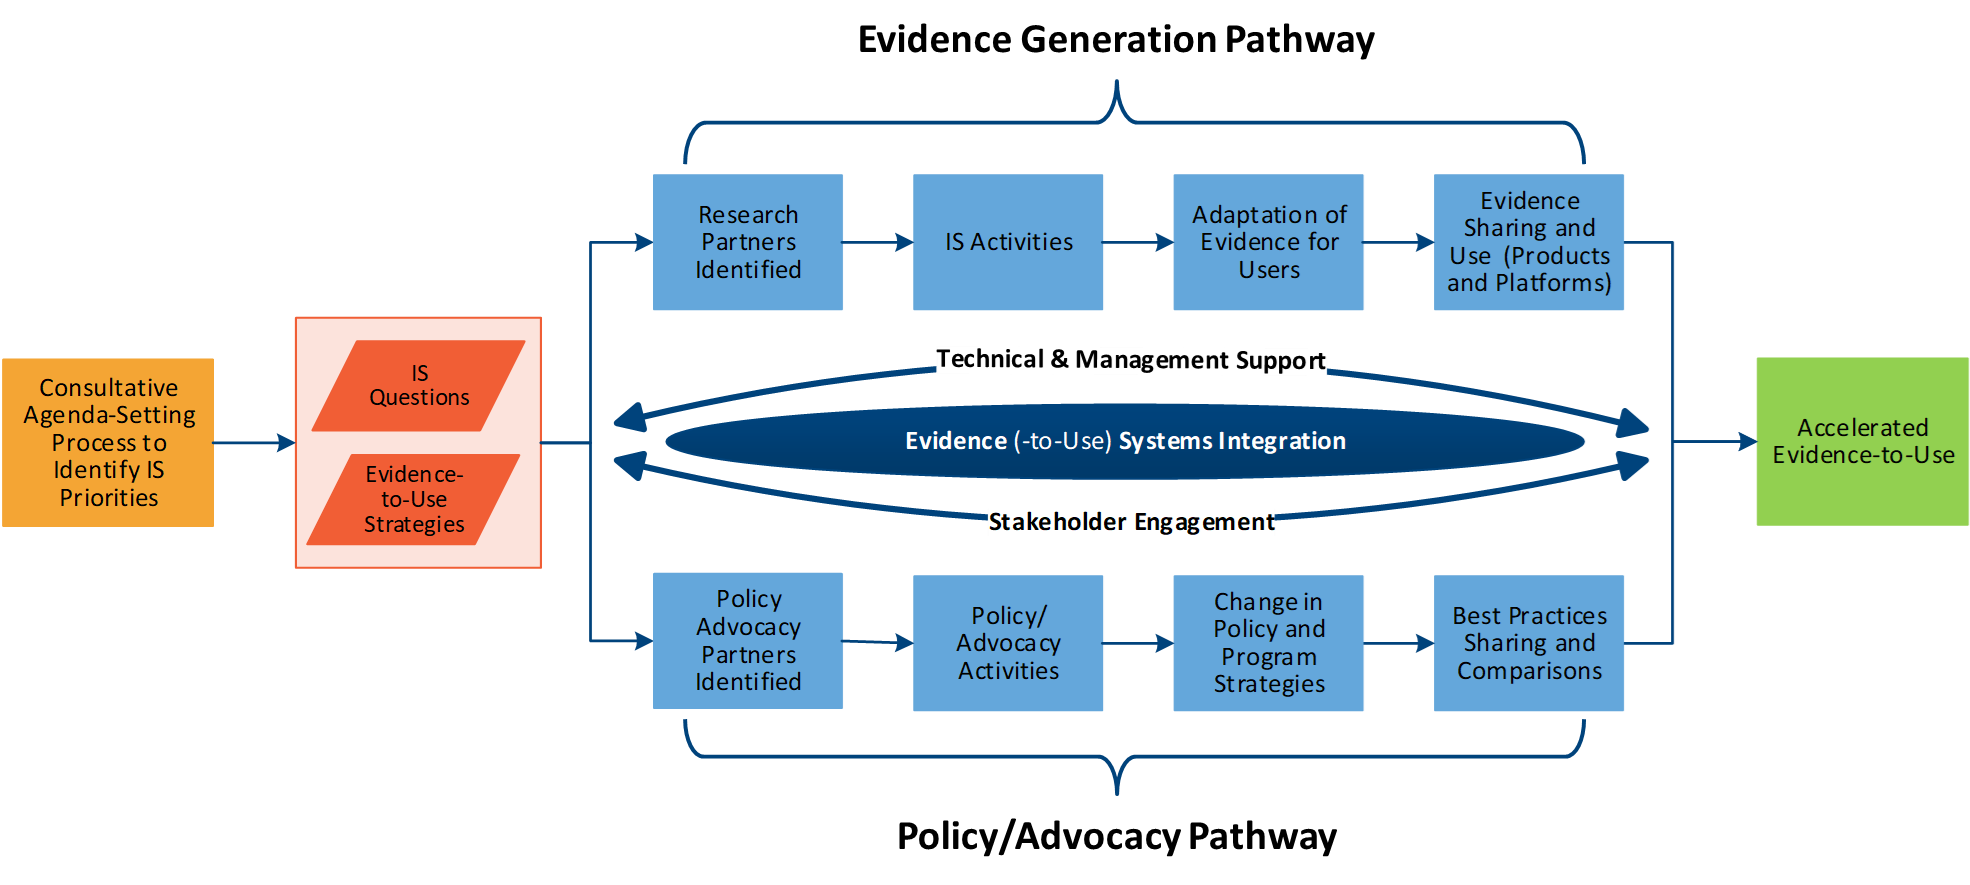 Details evidence generation and policy/advocacy pathways